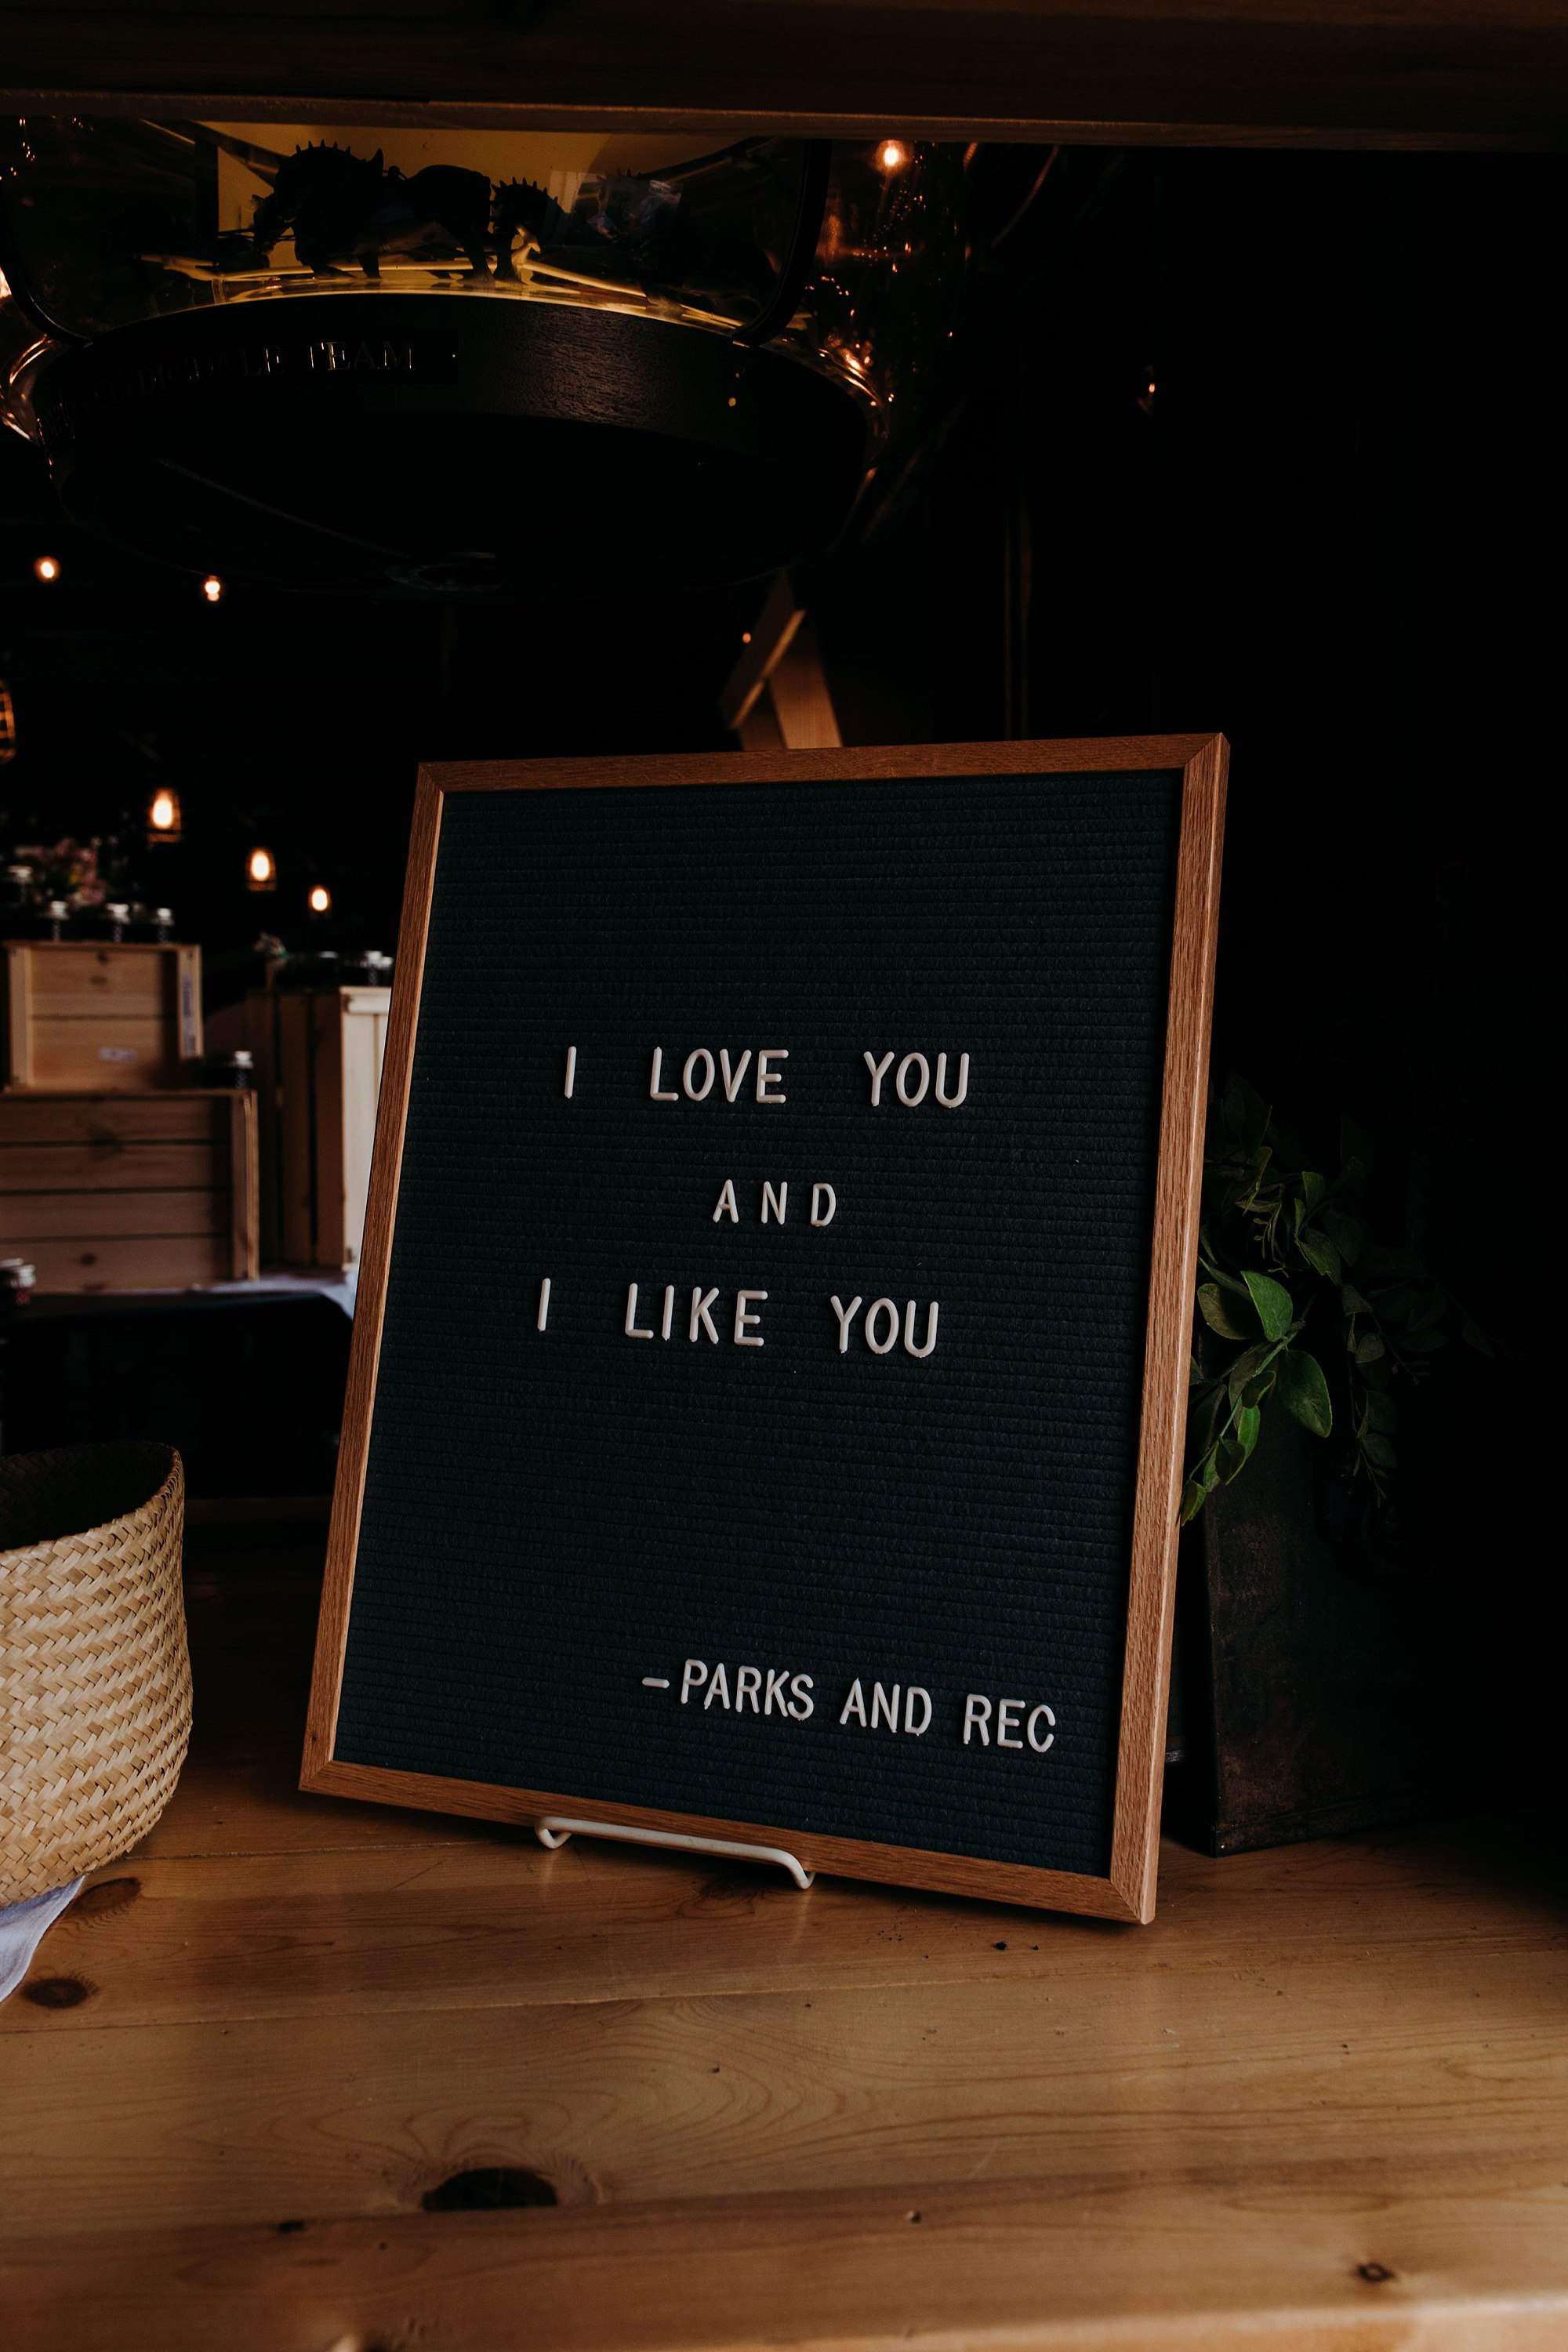 parks and rec quotes at lake okoboji barn wedding